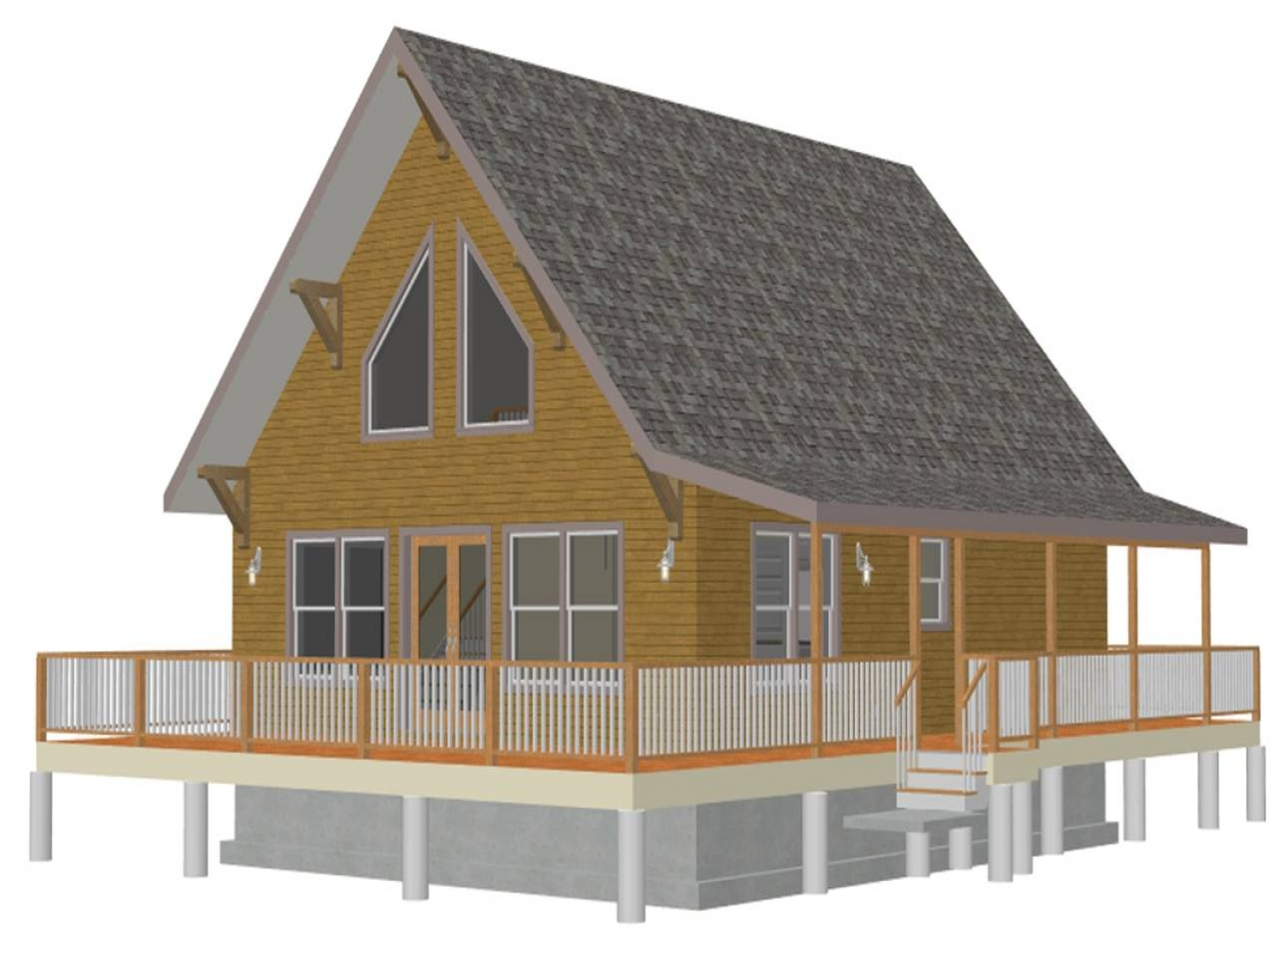 Small cabin house plans with loft small rustic house plans for Building a small cabin with loft